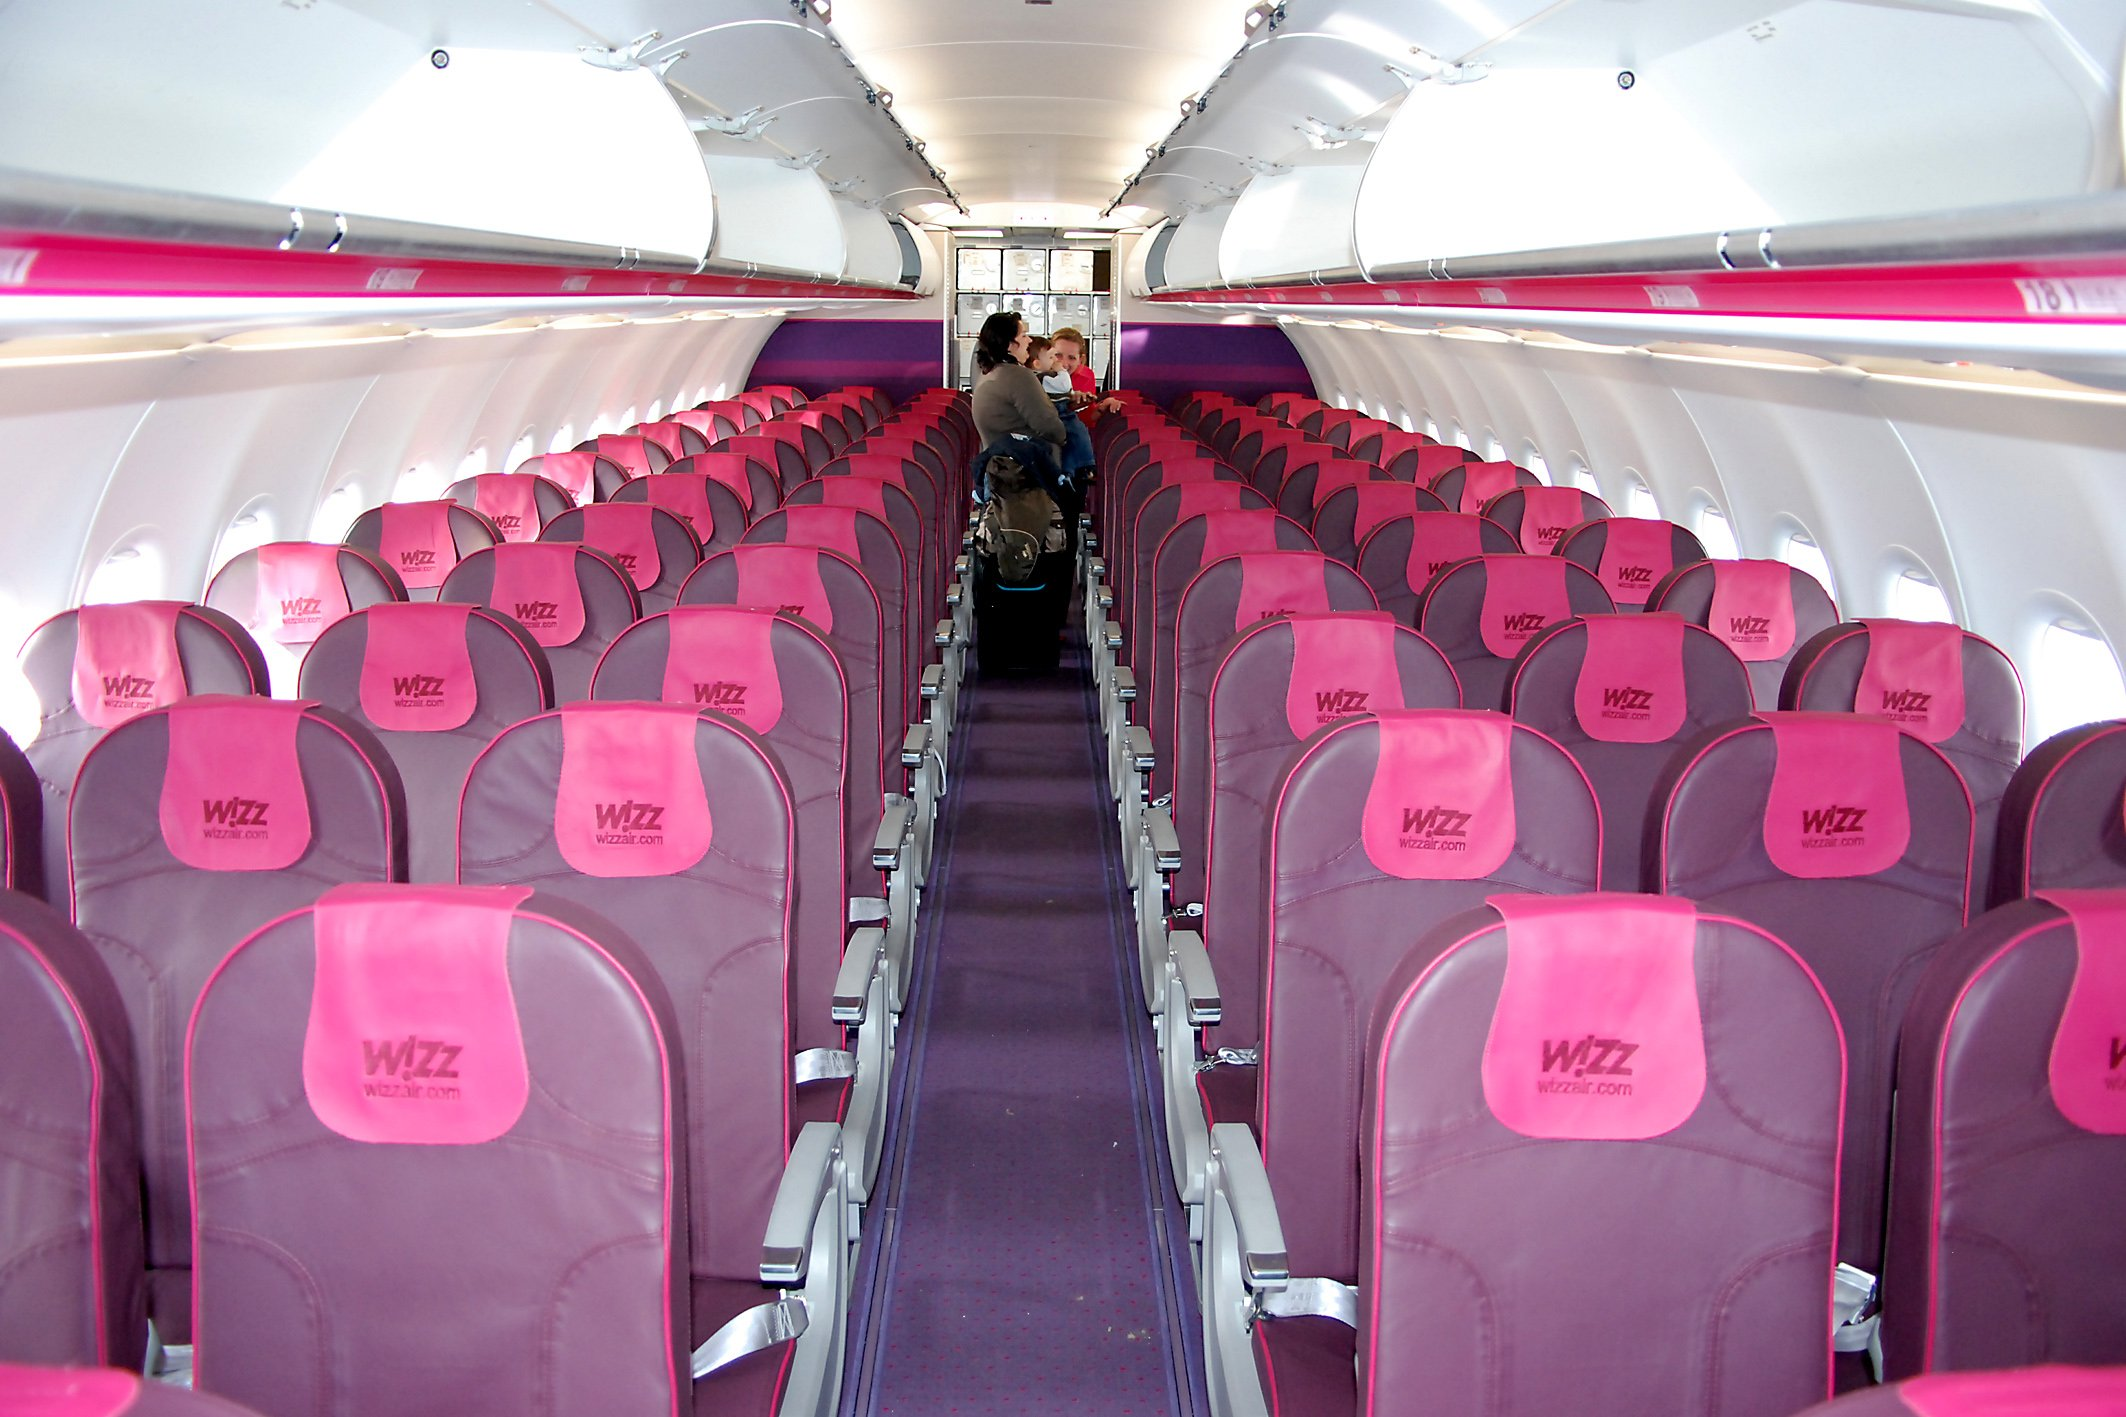 Wizzair Kabine. Foto: Exbir Travel, C. Maskos